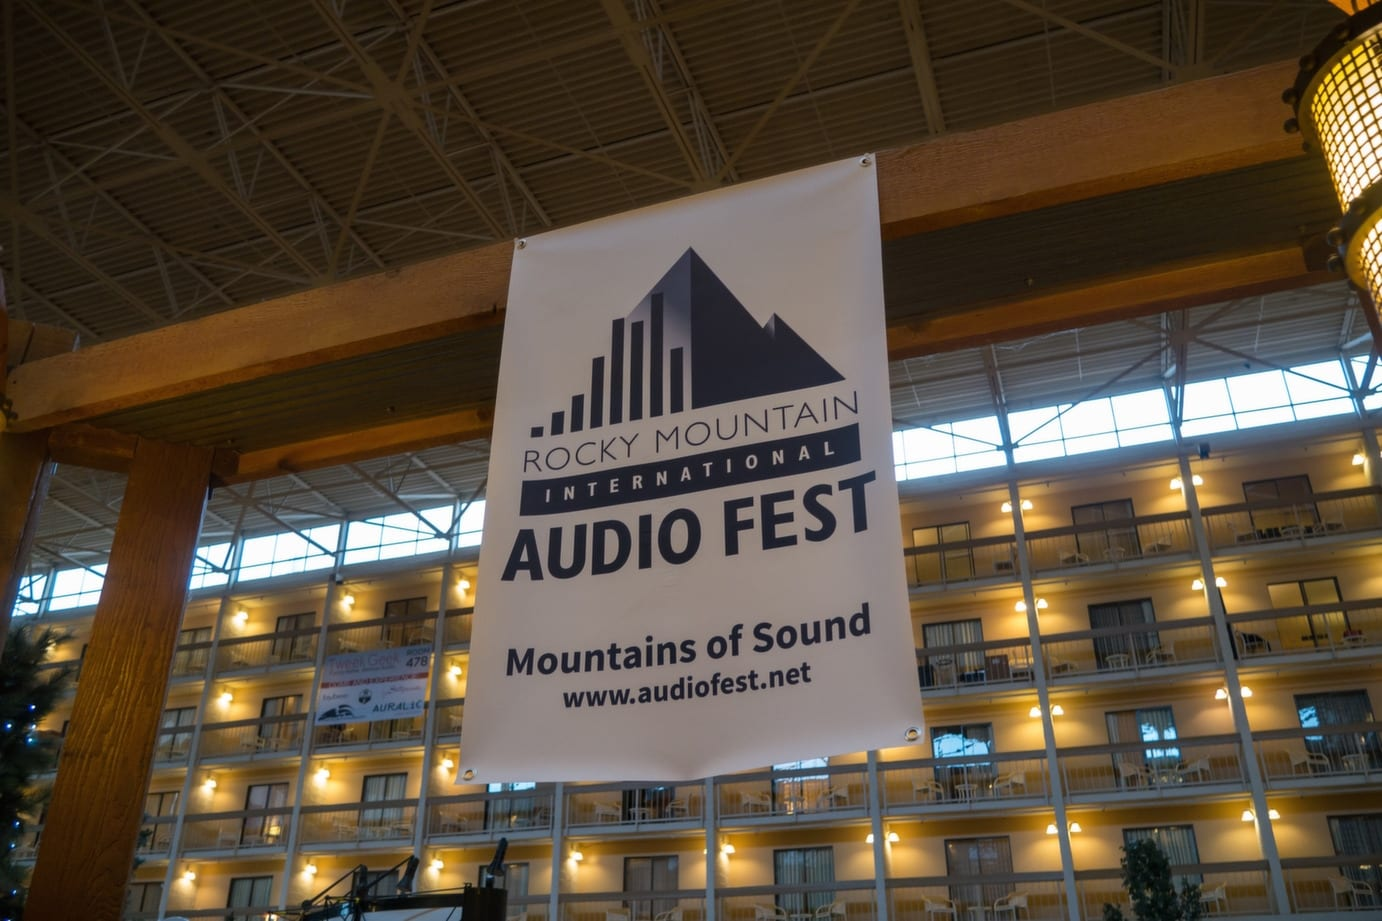 Rocky Mountain Audio Fest 2014: Digital and Stand-Mount Speakers